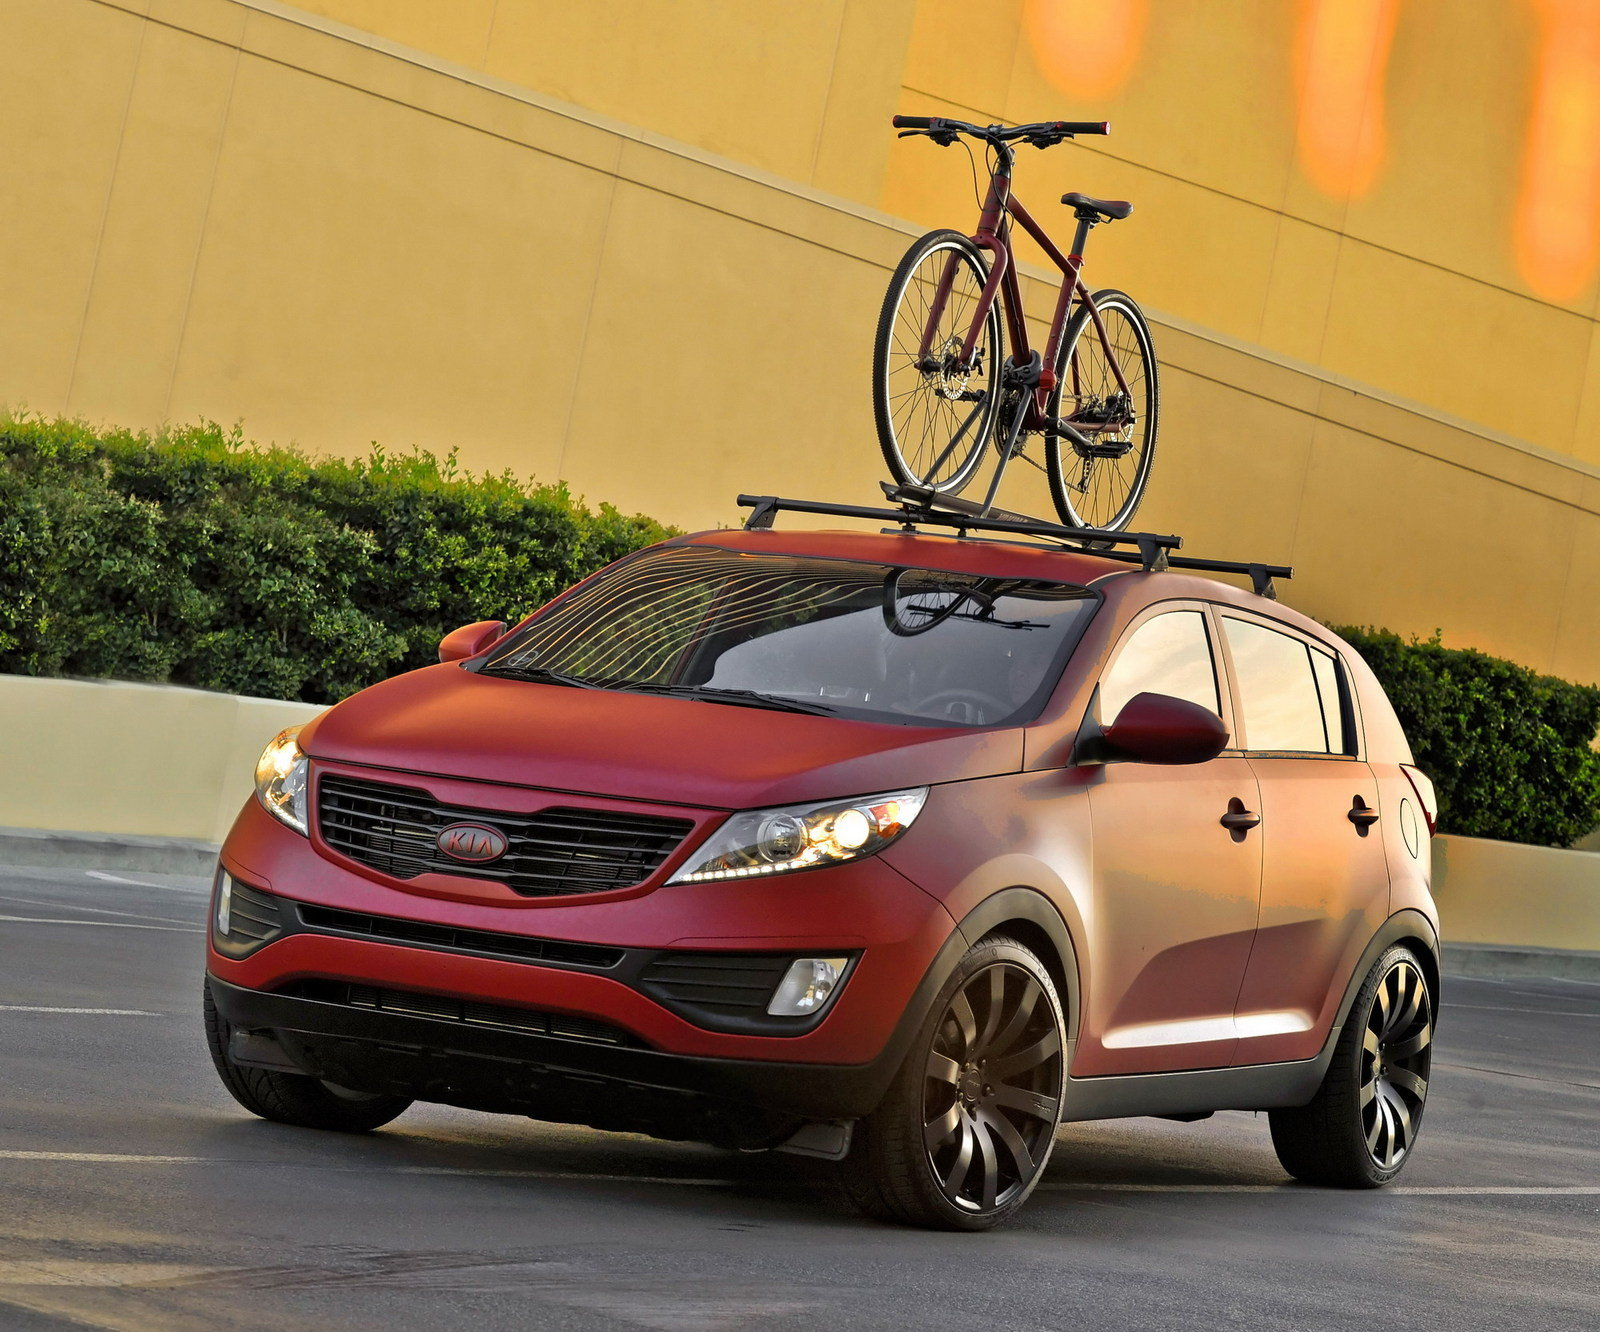 2010 kia sportage by antenna magazine picture 380135 car review top speed. Black Bedroom Furniture Sets. Home Design Ideas